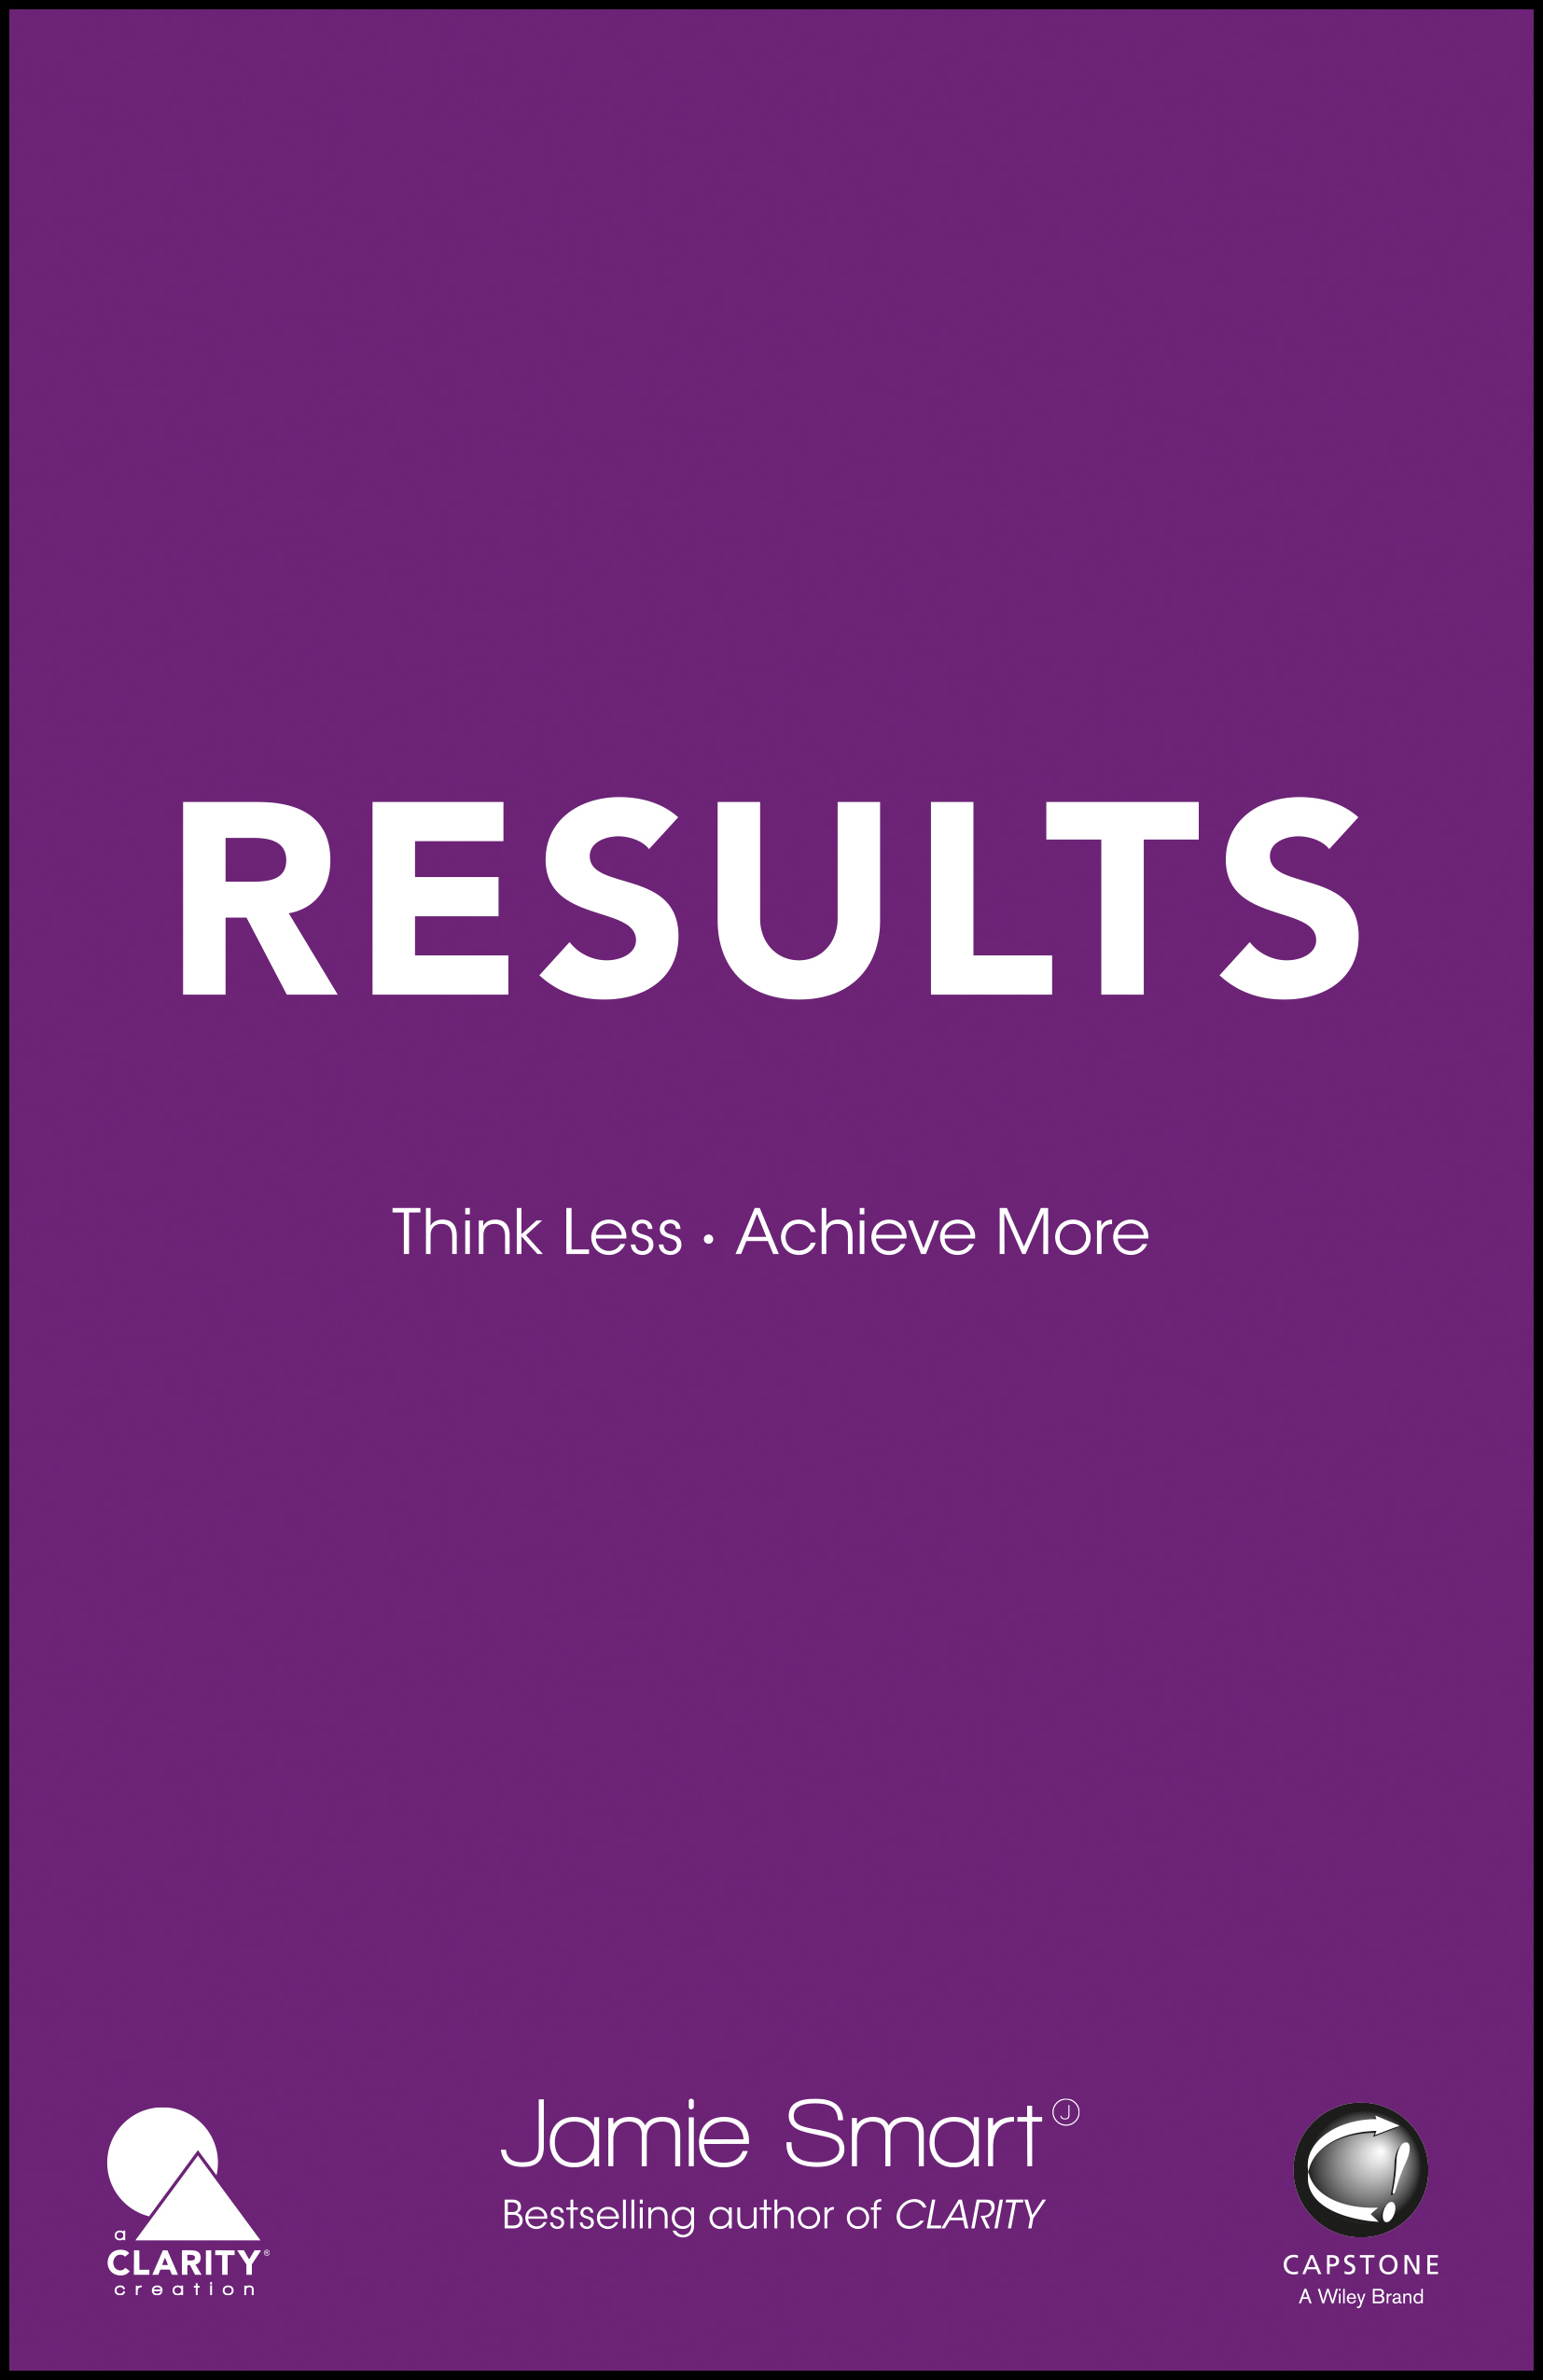 Results by Jamie Smart Book